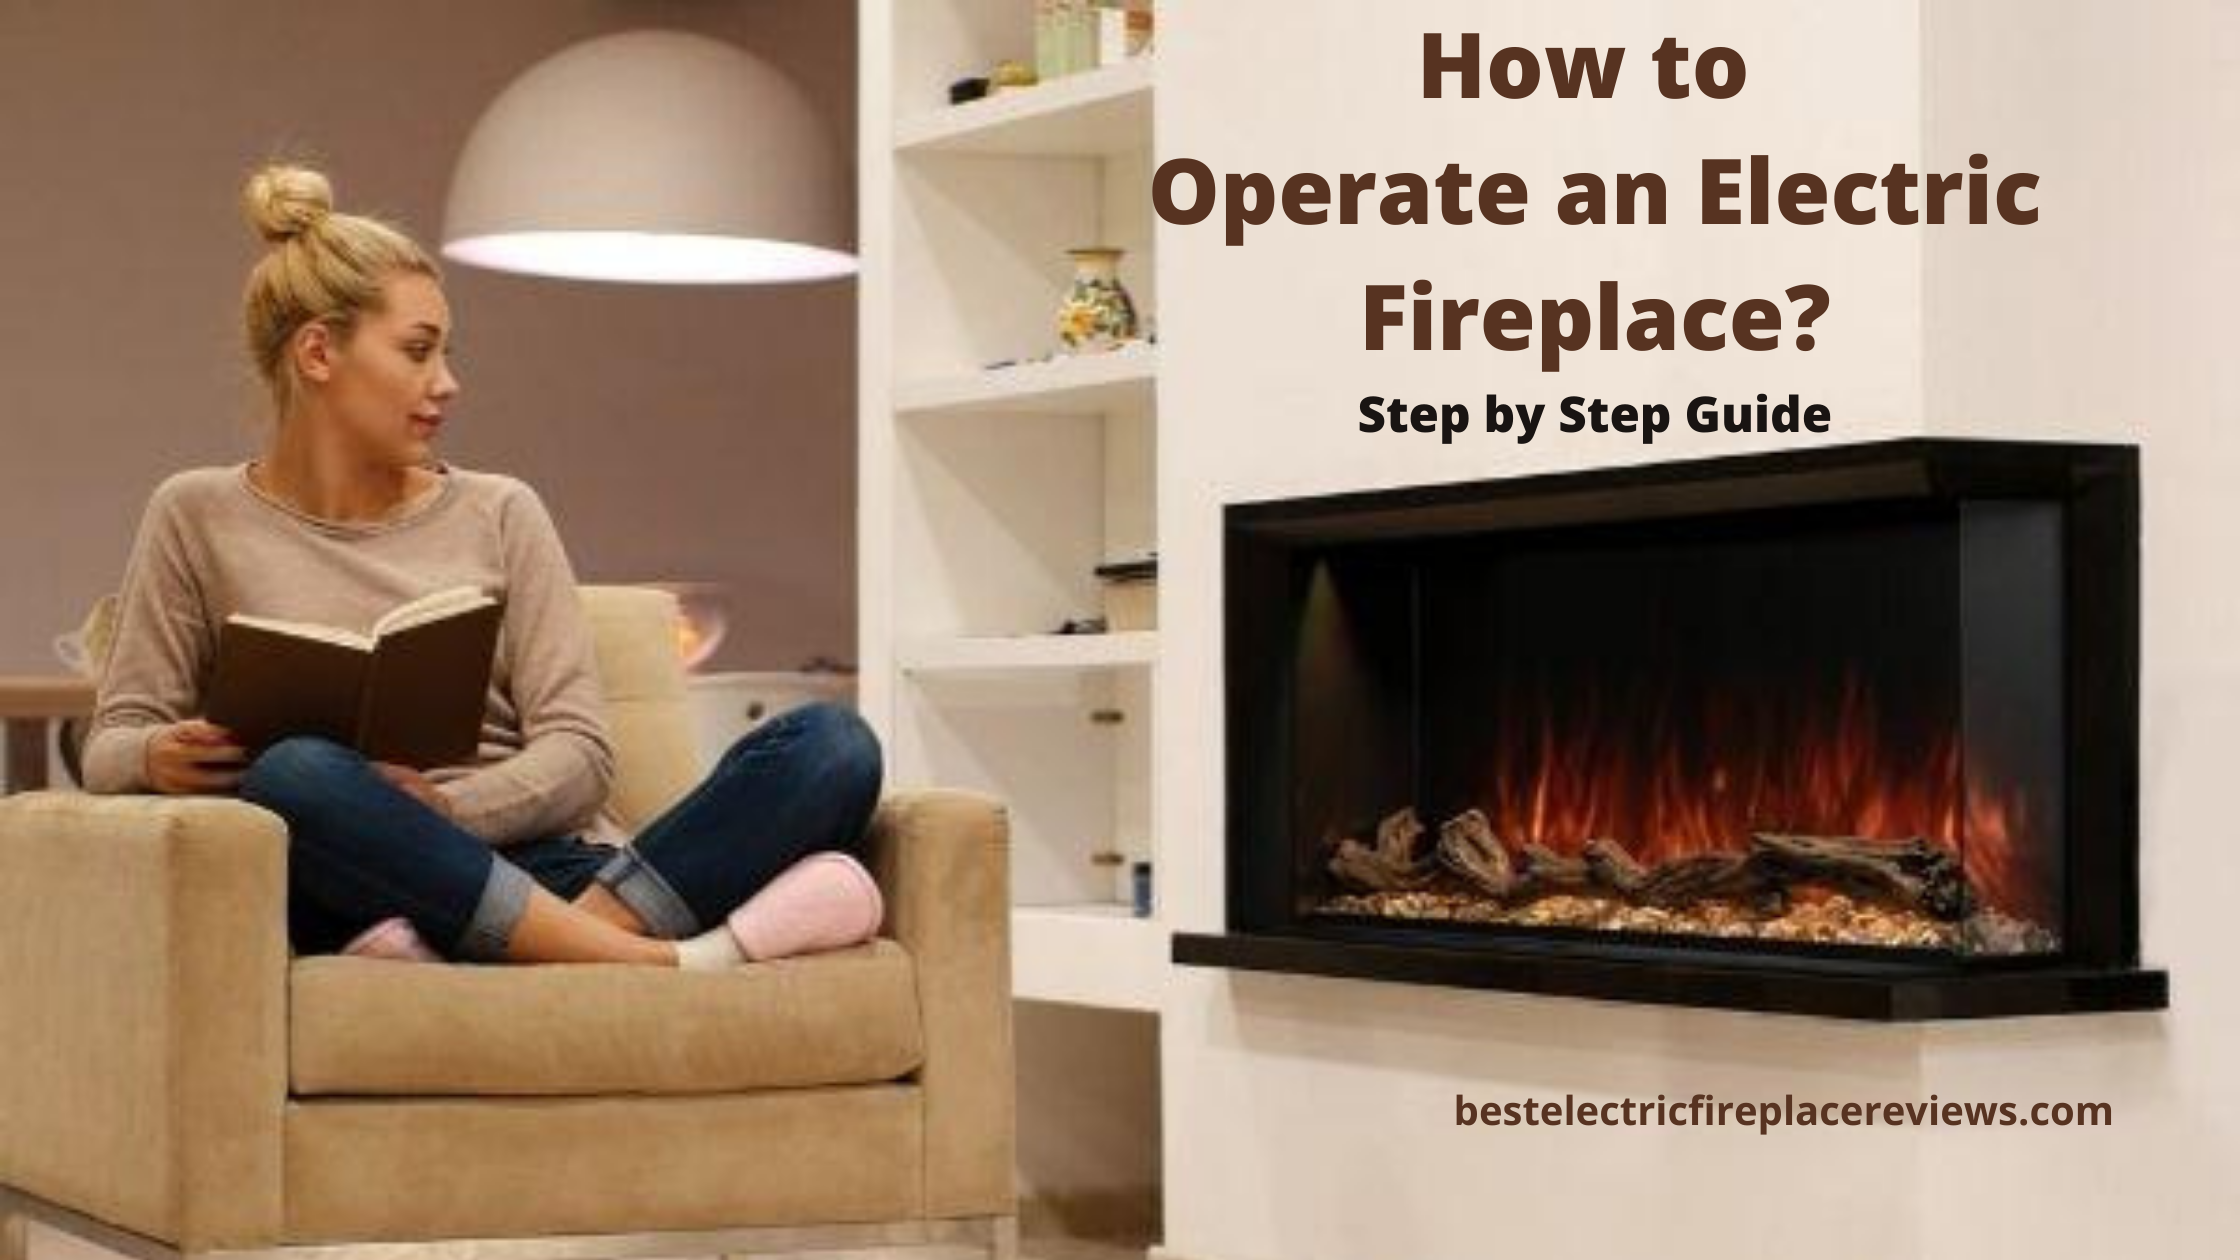 How to Operate an Electric Fireplace -Step by Step Guide